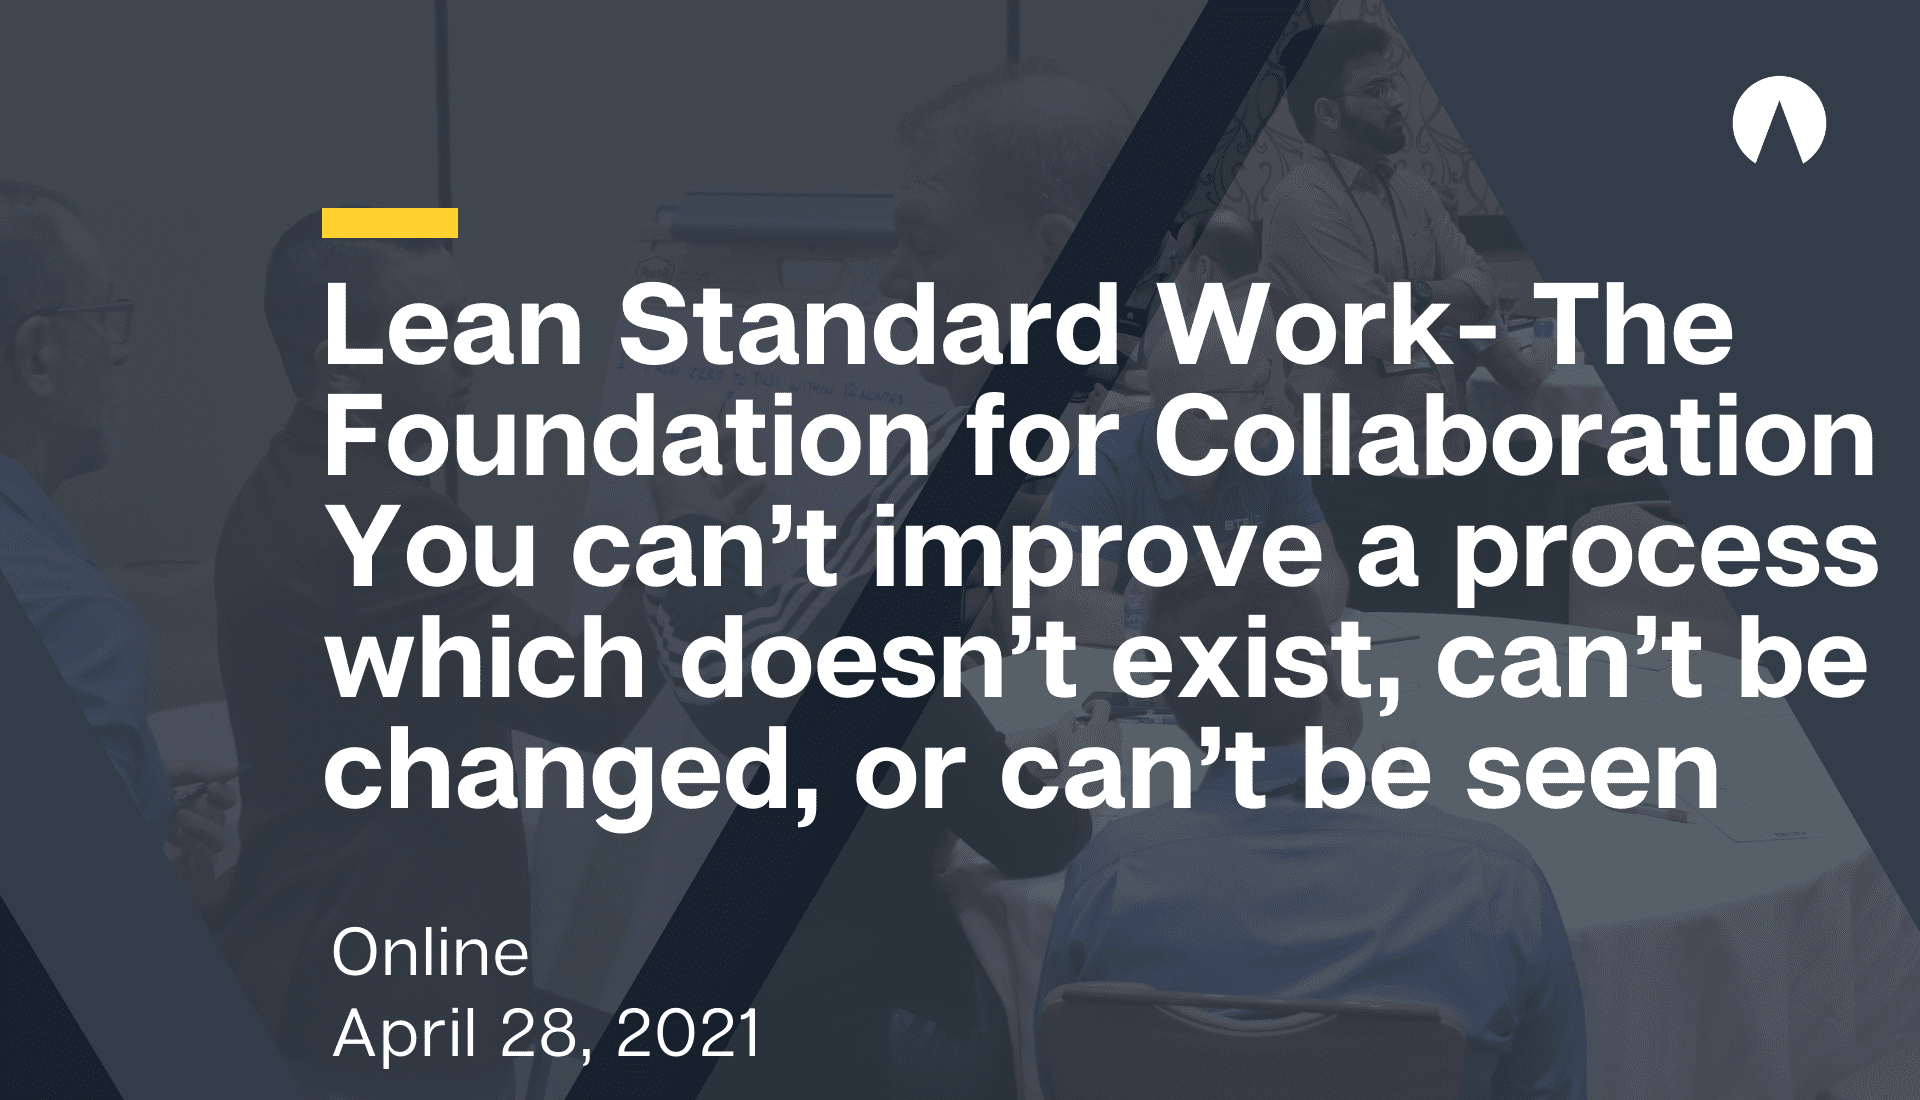 Lean Standard Work- The Foundation for Collaboration You can't improve a process which doesn't exist, can't be changed, or can't be seen